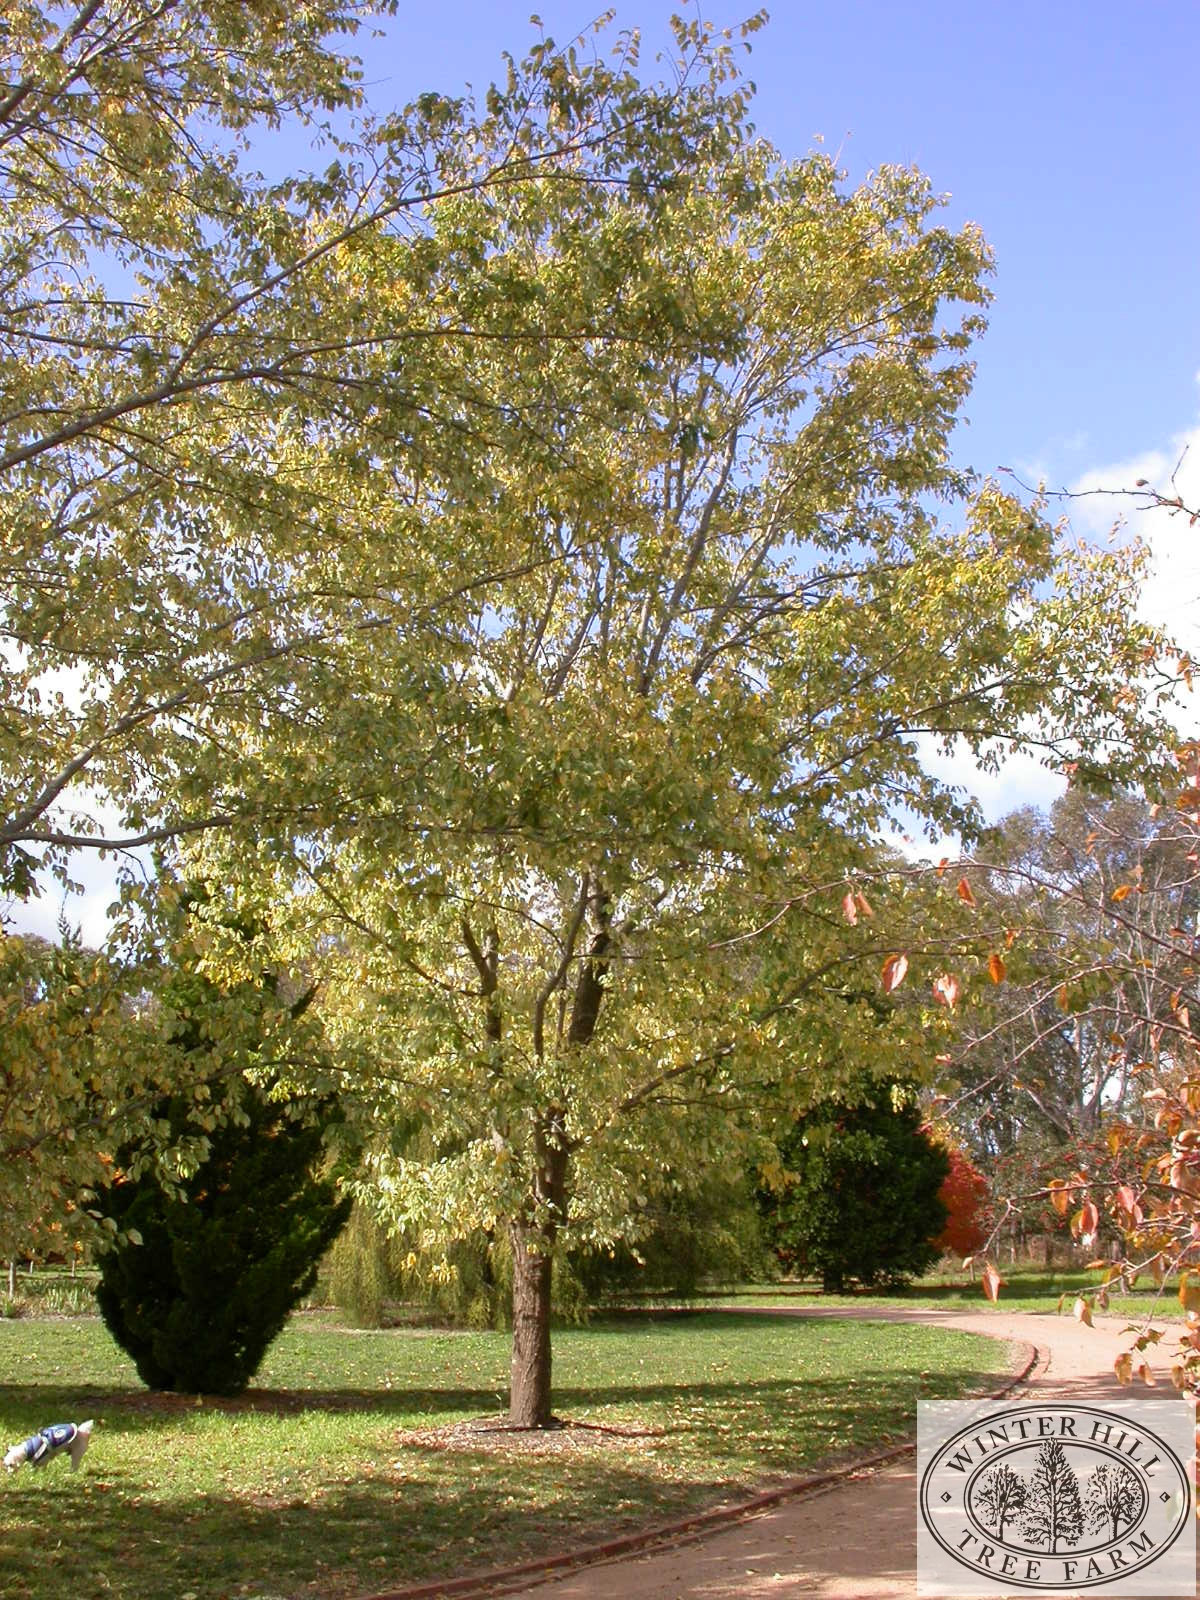 Semi-mature specimen in autumn